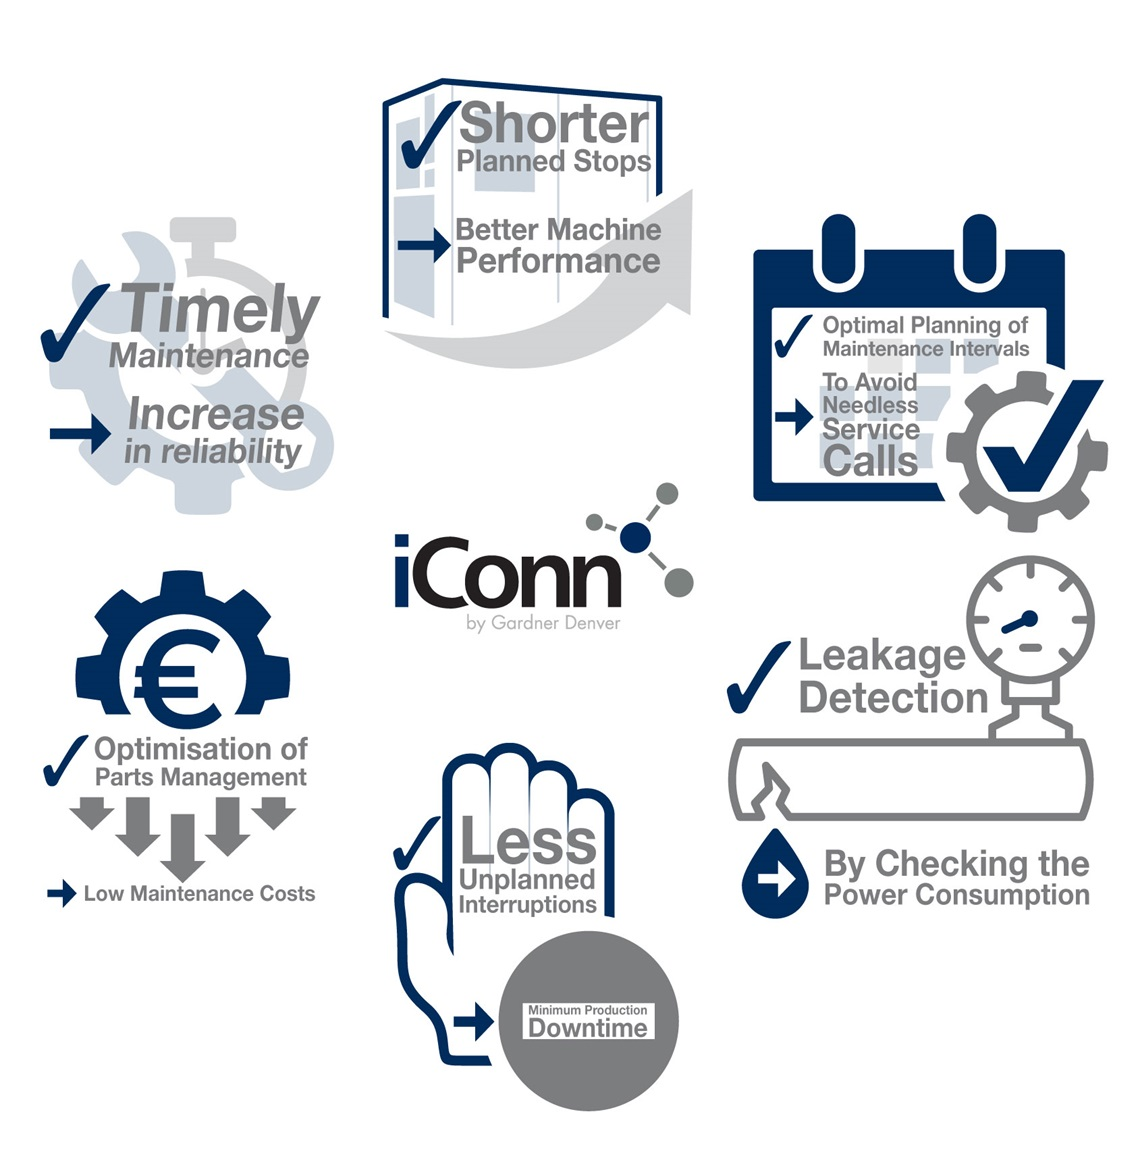 benefits of iConn remote compressor diagnostics diagram